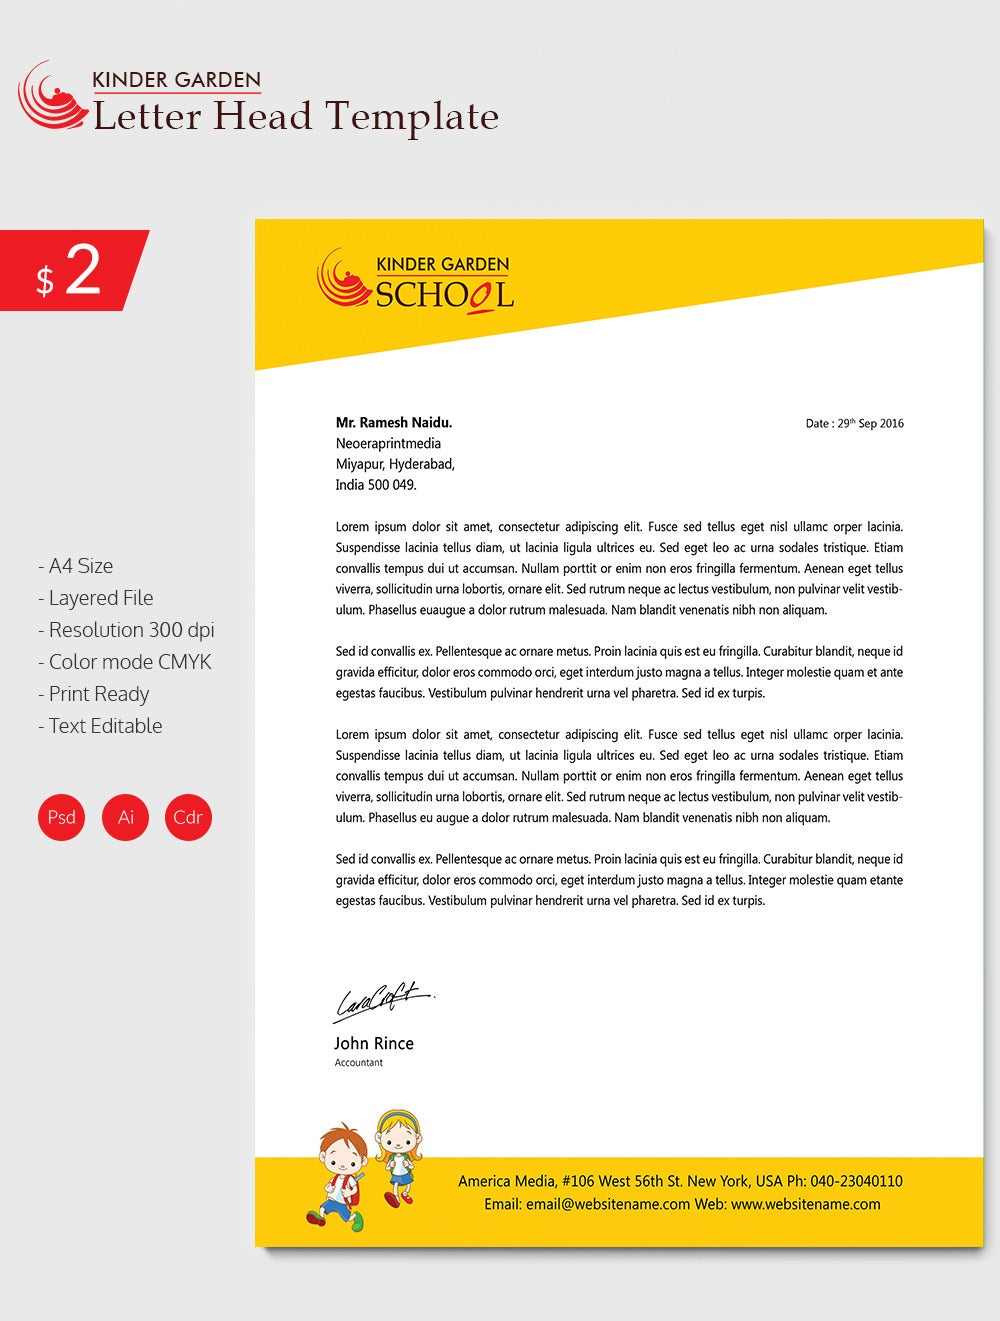 Amazing Kindergarten School Letterhead Download